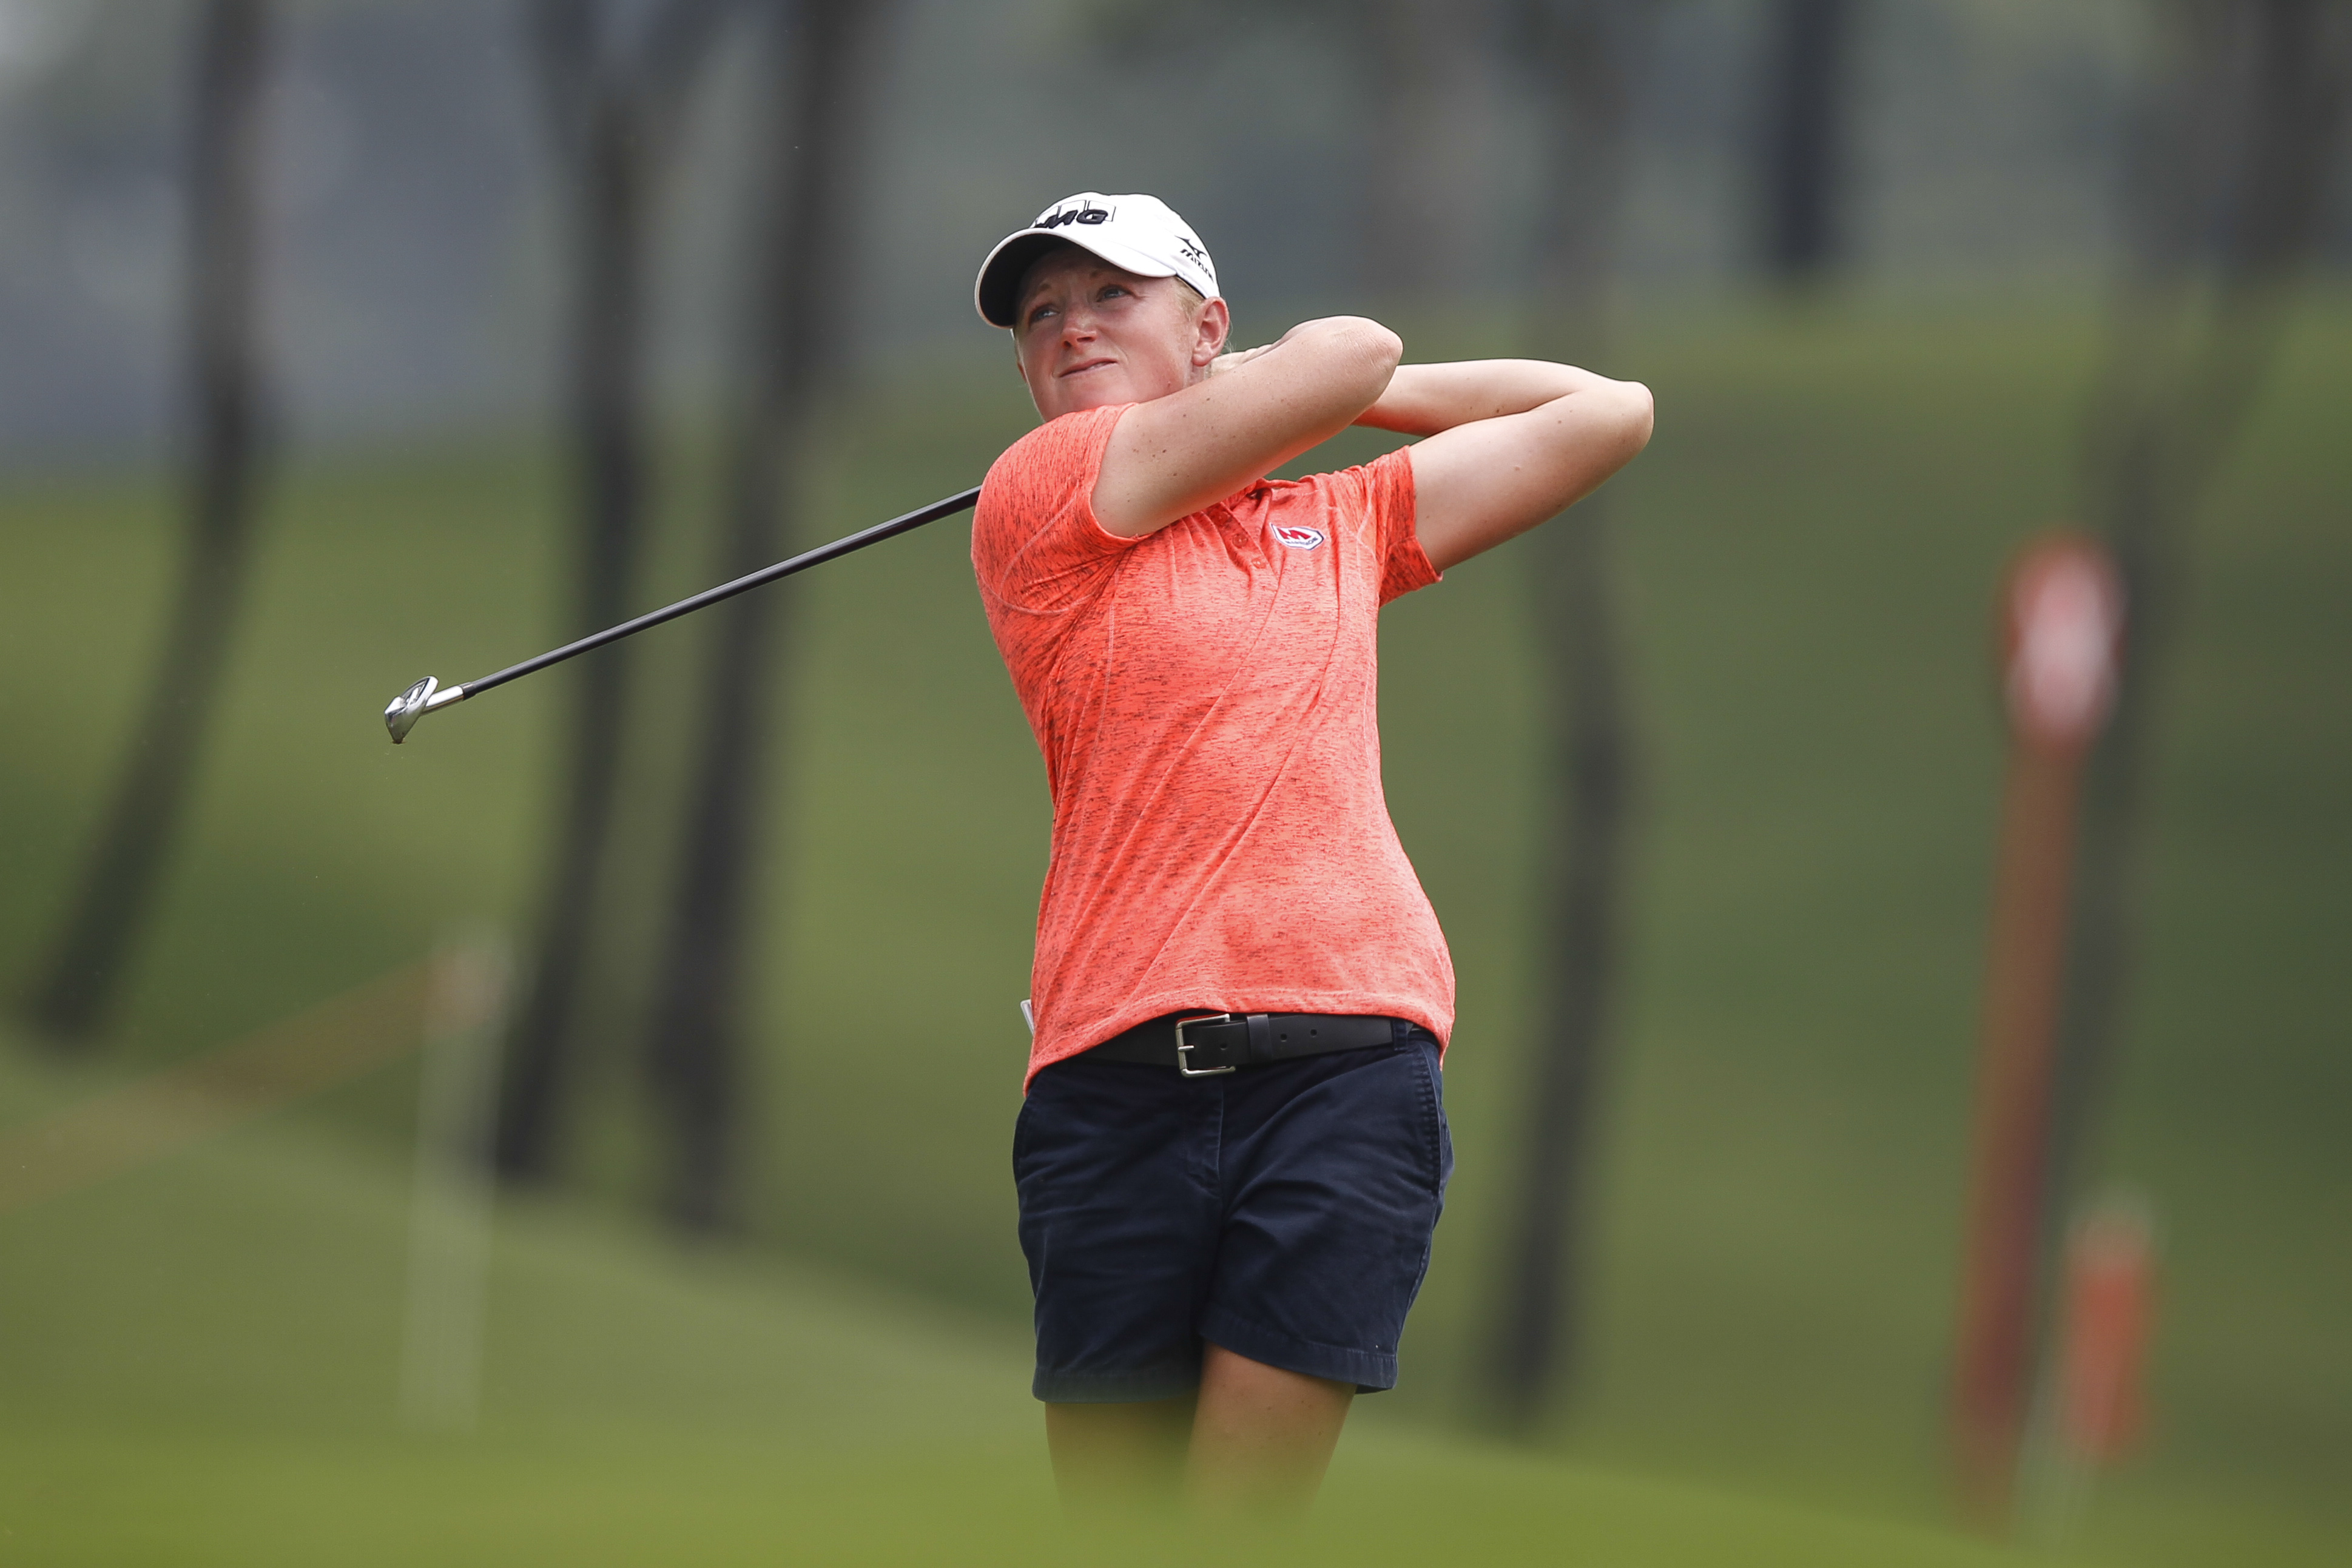 Stacy Lewis of the United States watches her approach shot onto the 18th green during the third round of the LPGA Malaysia golf tournament at Kuala Lumpur Golf and Country Club in Kuala Lumpur, Malaysia, Saturday, Oct. 10, 2015. (AP Photo/Joshua Paul)